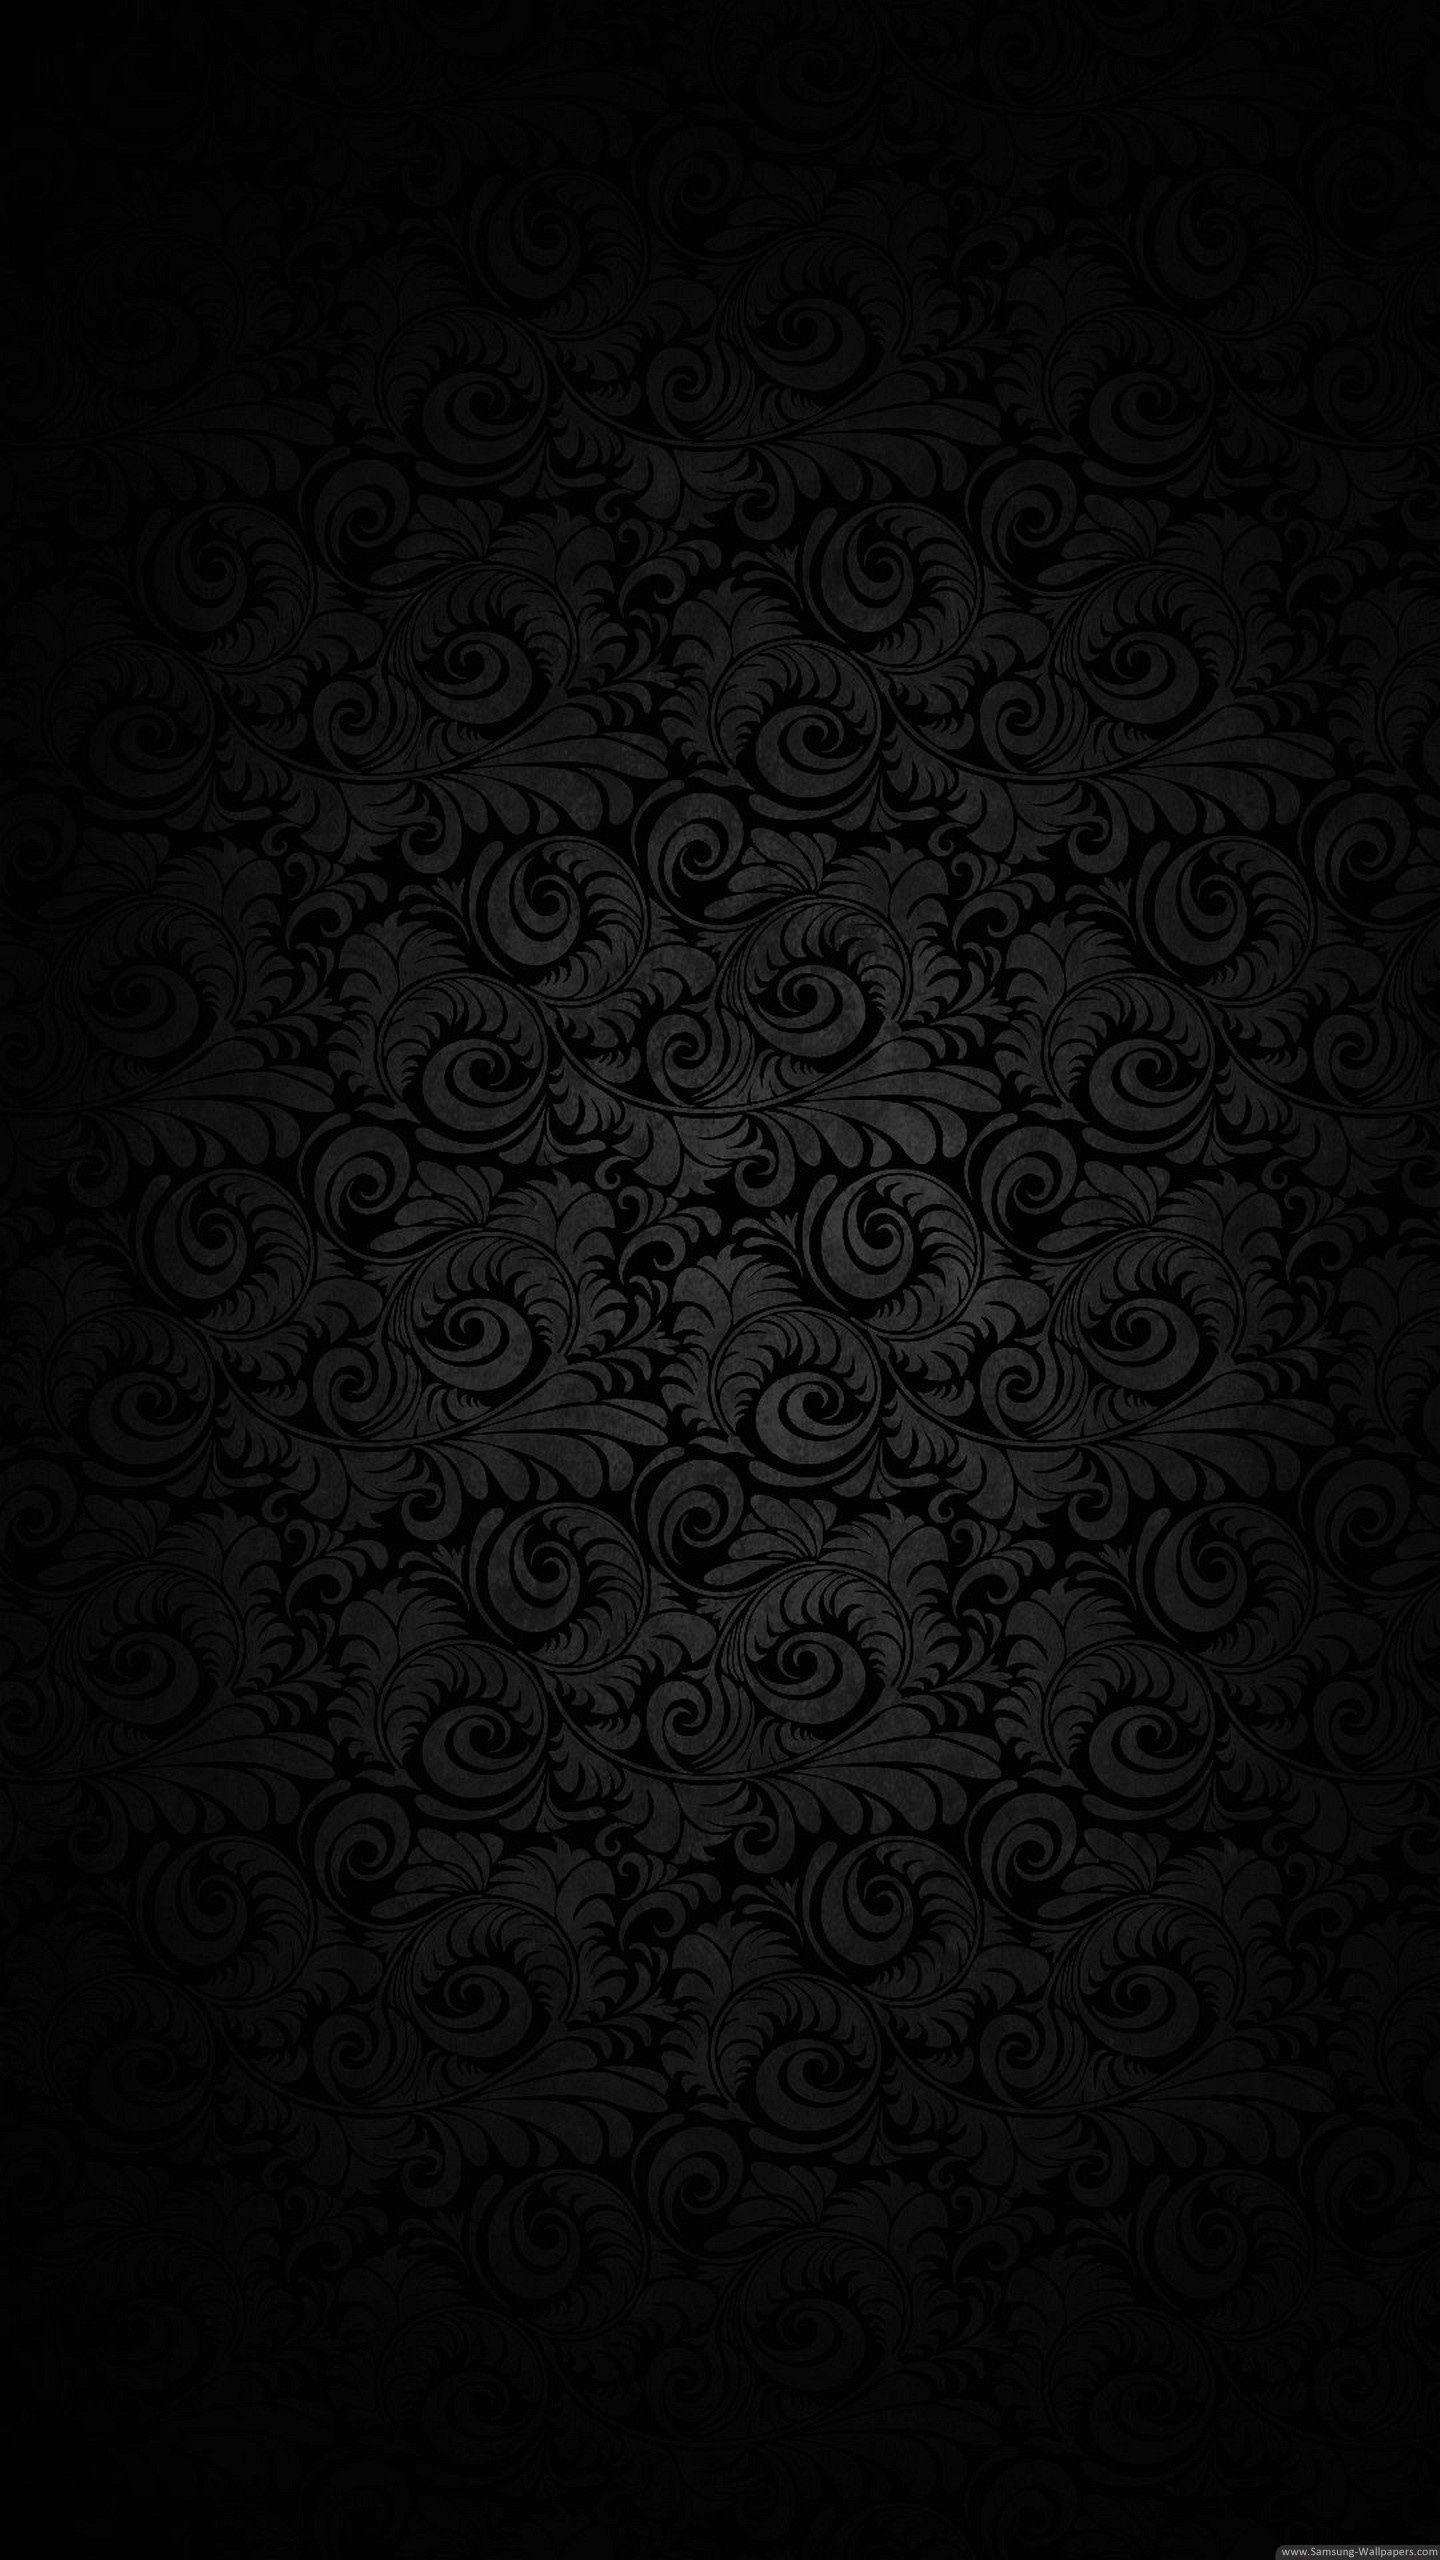 1440x2560 Black Wallpapers Top Free 1440x2560 Black Backgrounds Wallpaperaccess